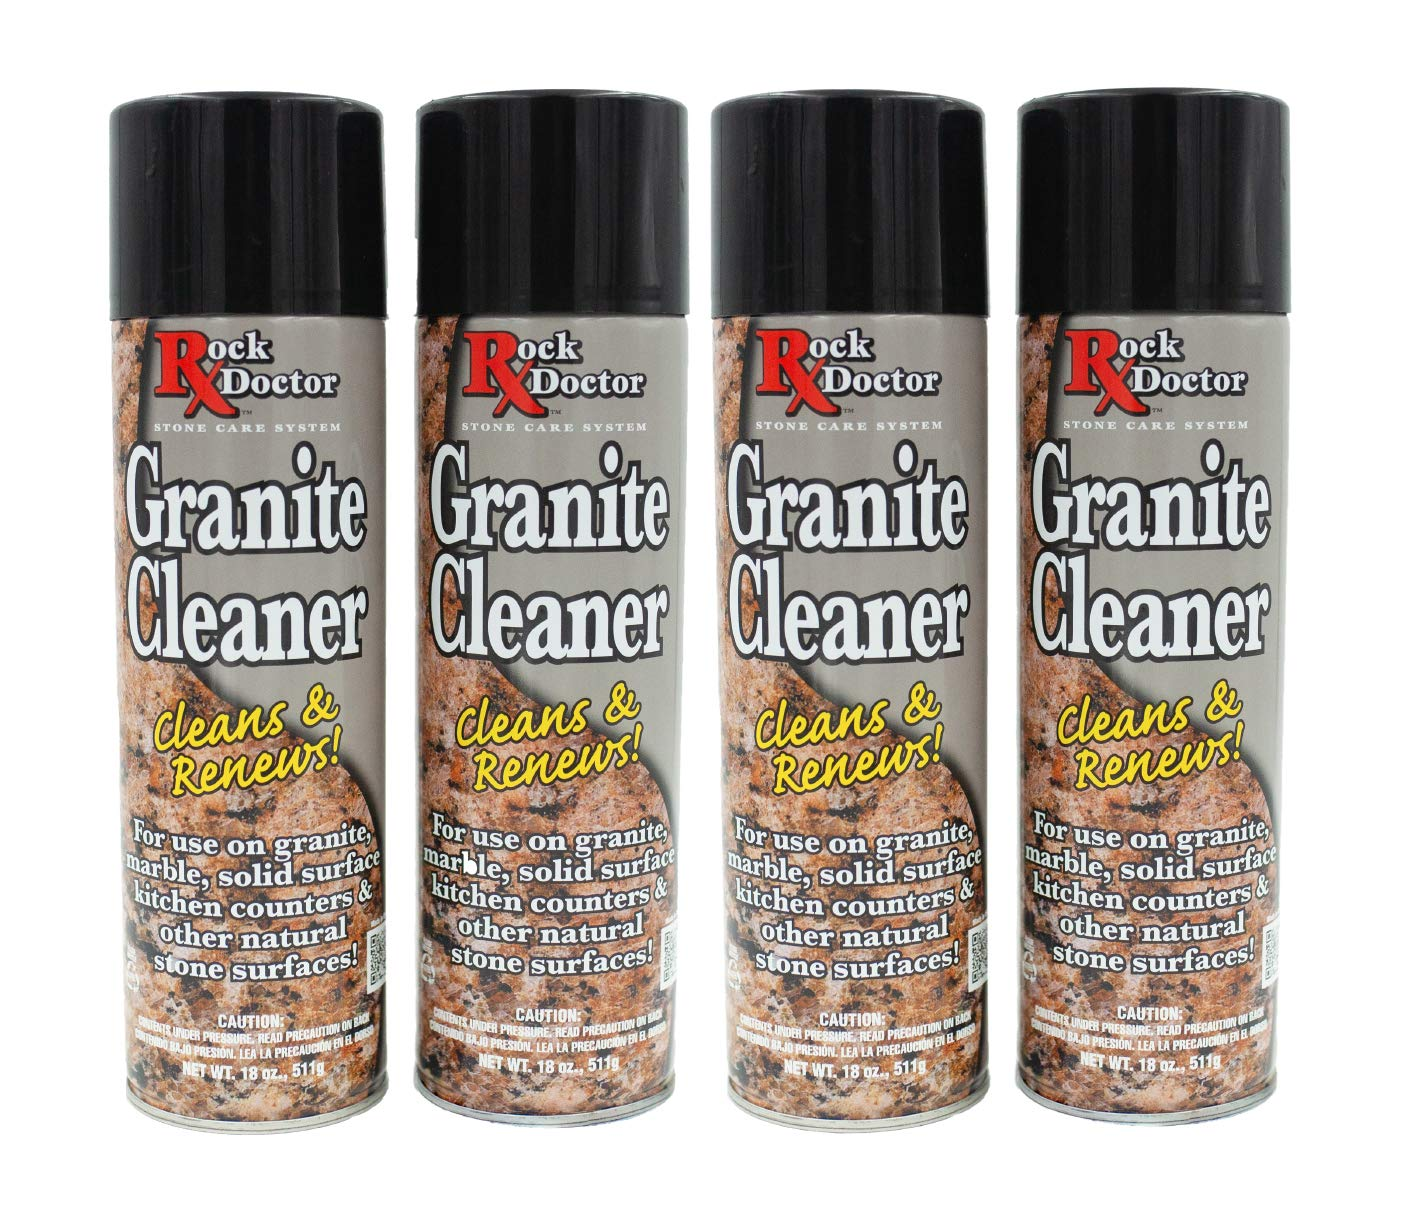 Rock Doctor Granite Cleaner - Cleans& Renews Surfaces - (18 oz) Surface Cleaner Spray, Granite/Marble Countertop Cleaner, Cleaning Spray for Vanity, Table Top, Kitchen Counters, Stone Surfaces (4Pack) by Rock Doctor